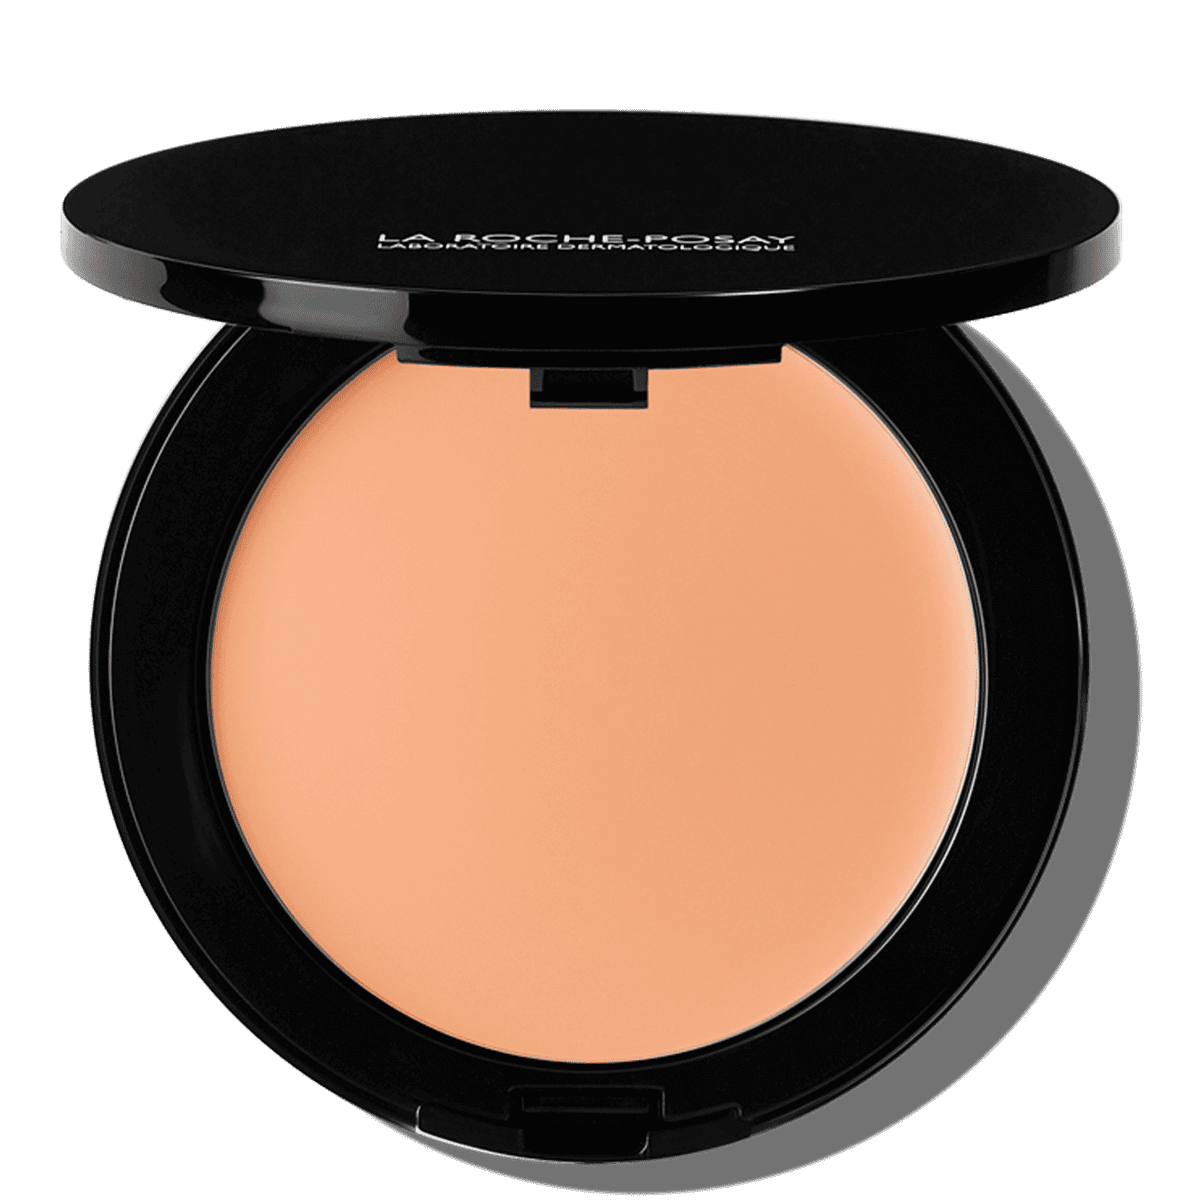 La Roche Posay Sensitive Toleriane Make up COMPACT_CREAM_11LightBeige